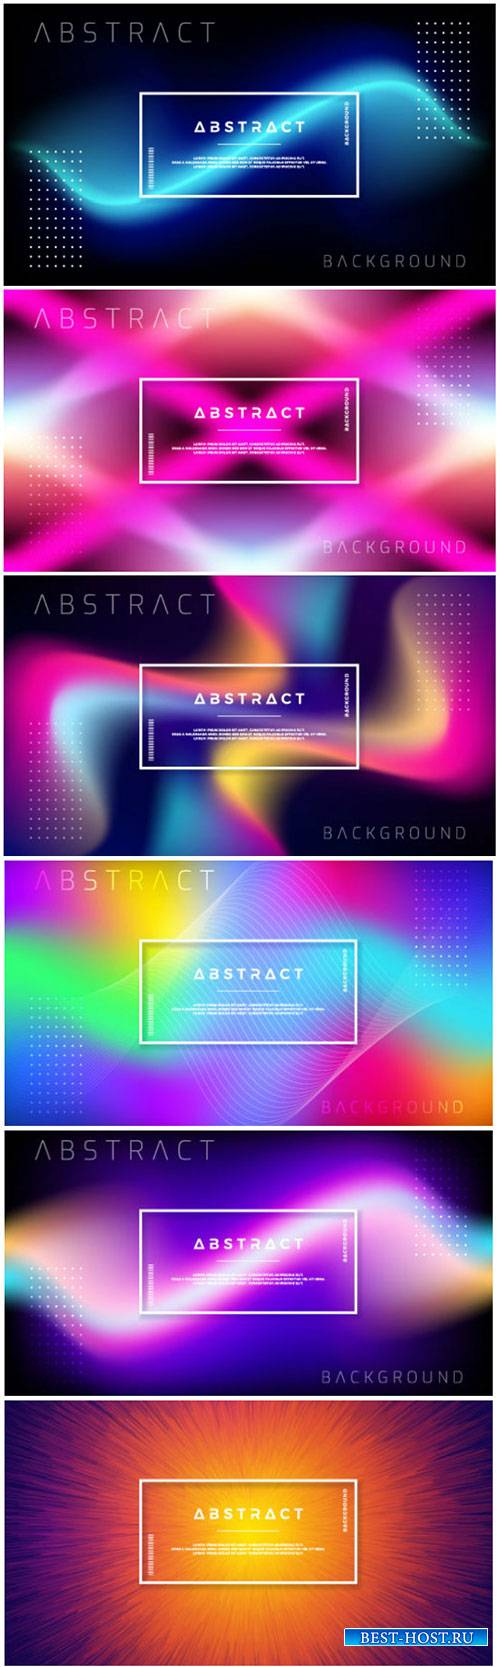 Abstract dynamic background design with colorful gradient shapes